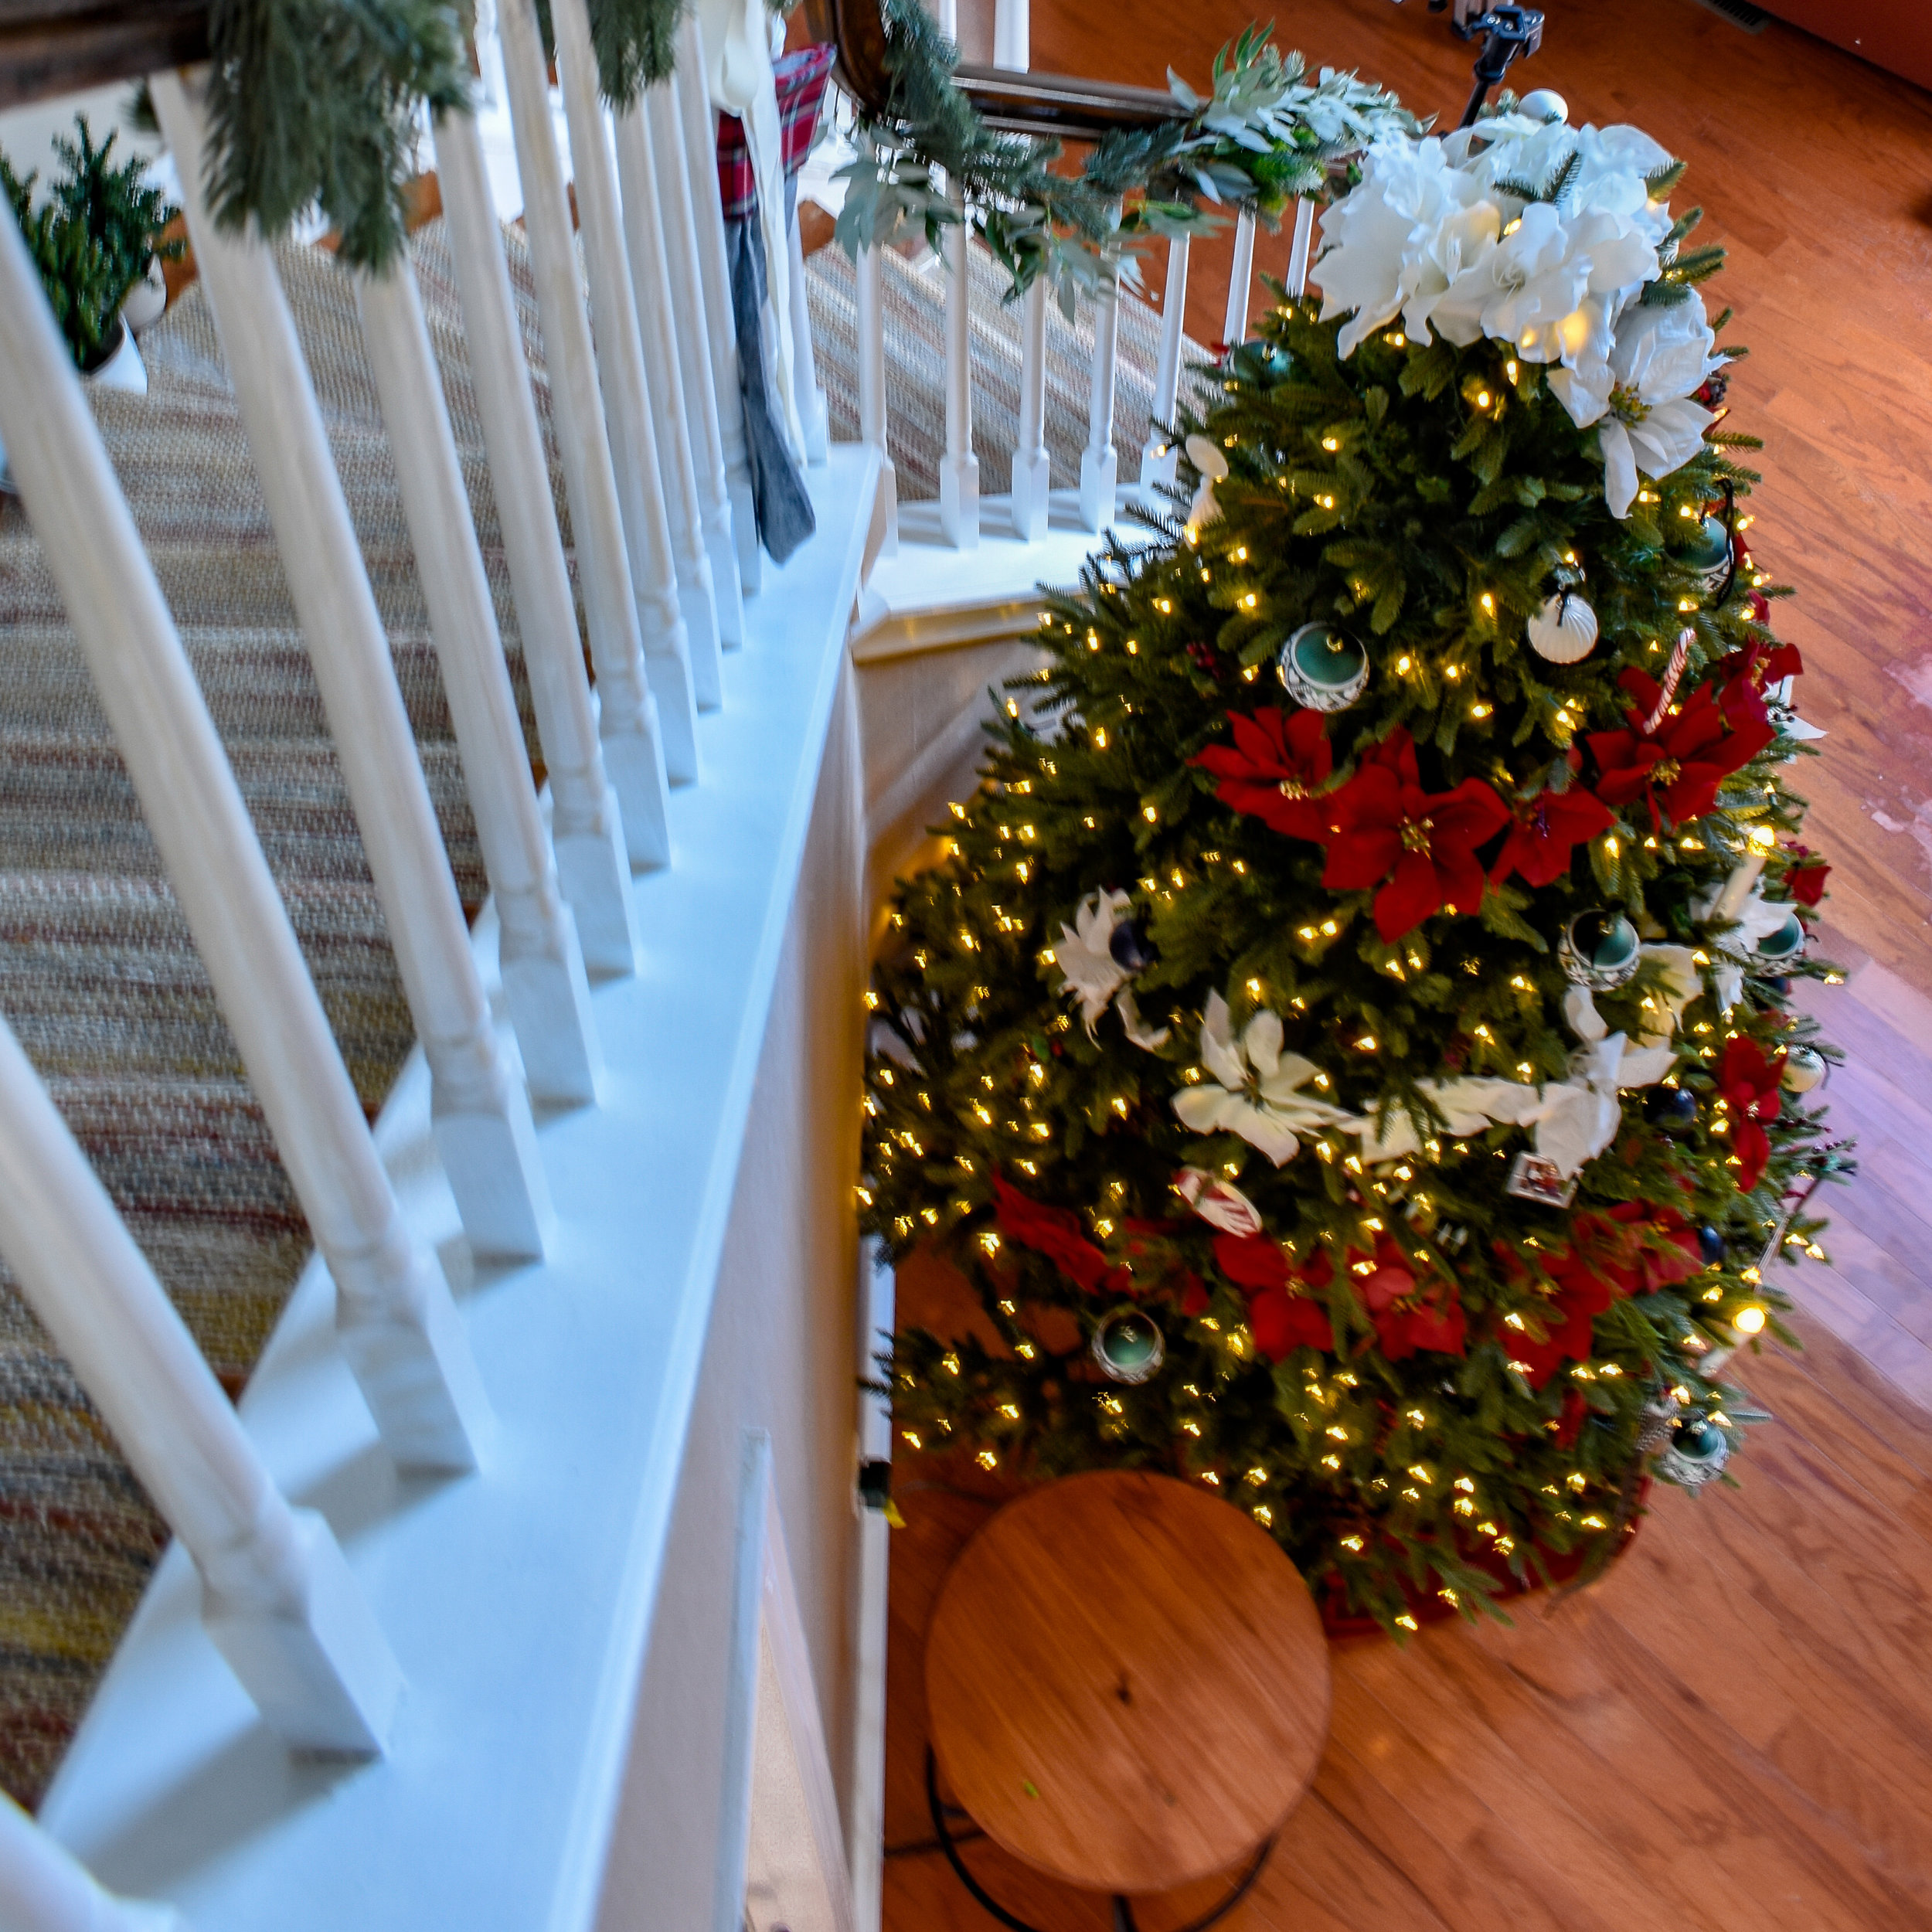 traditional christmas decor: in the foyer, we've added a Christmas tree decked out in red and white poinsettias